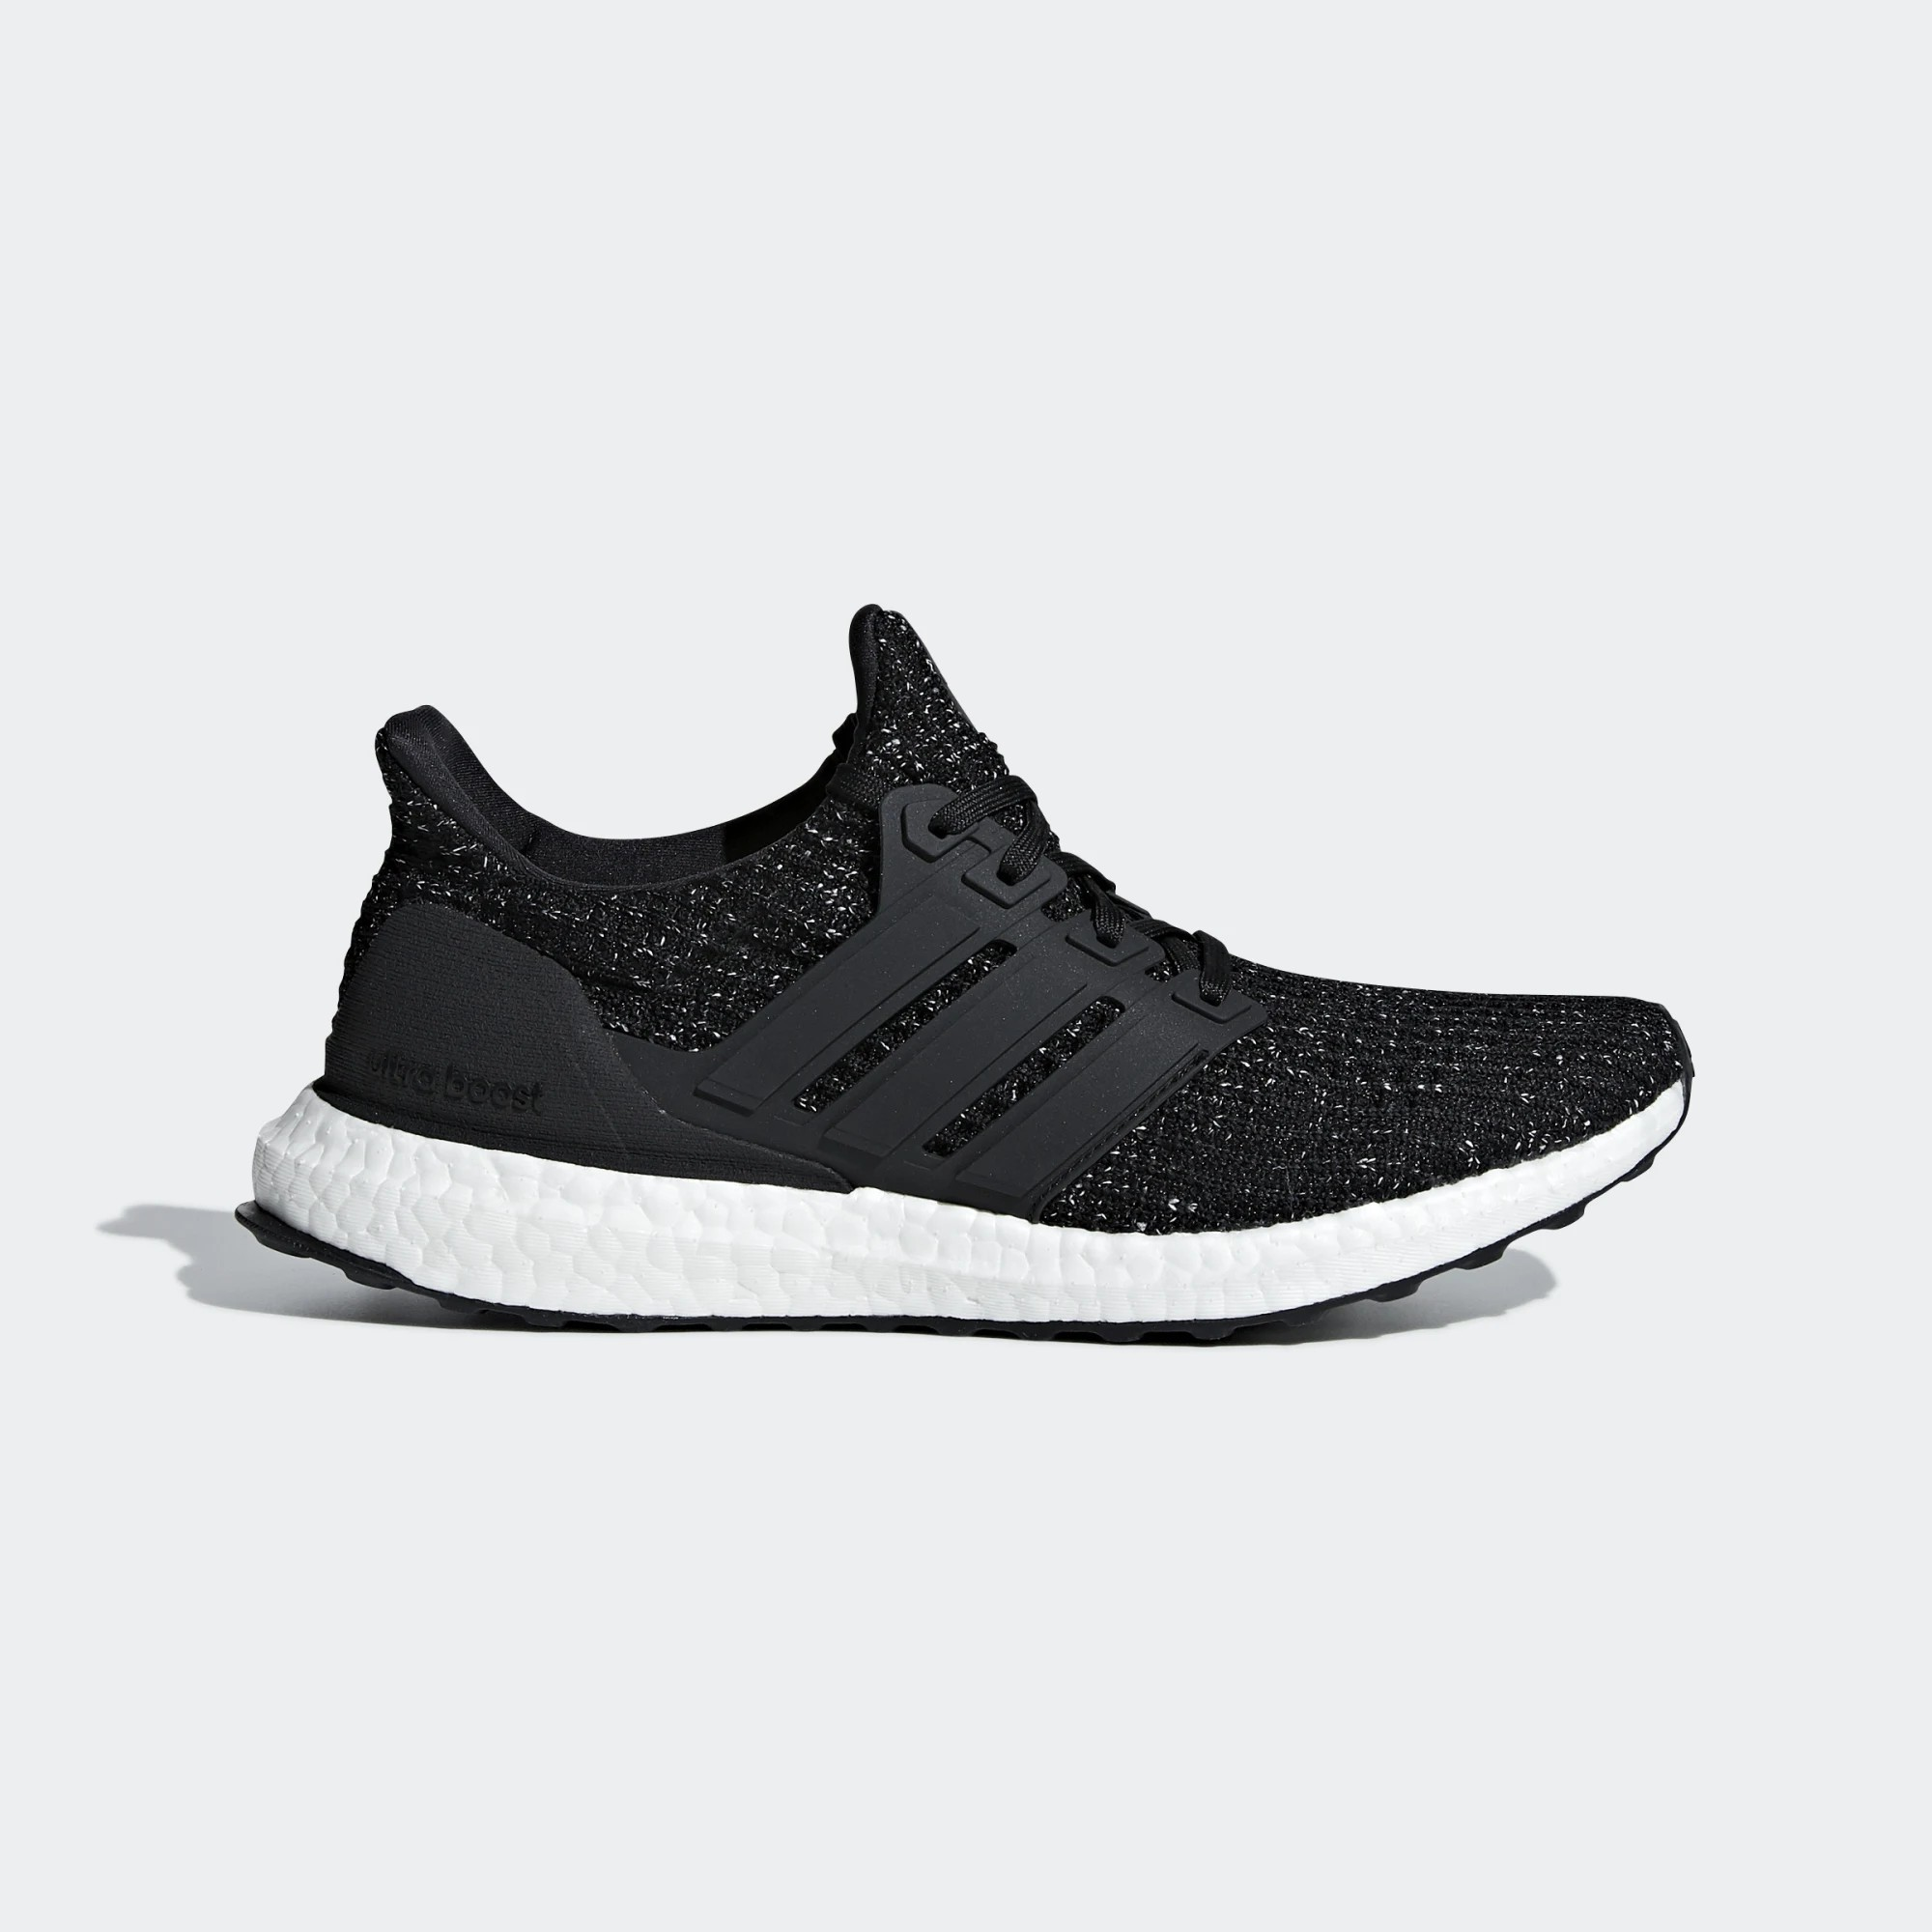 adidas F36125 Ultraboost Womens Running Shoe Charcoal/White